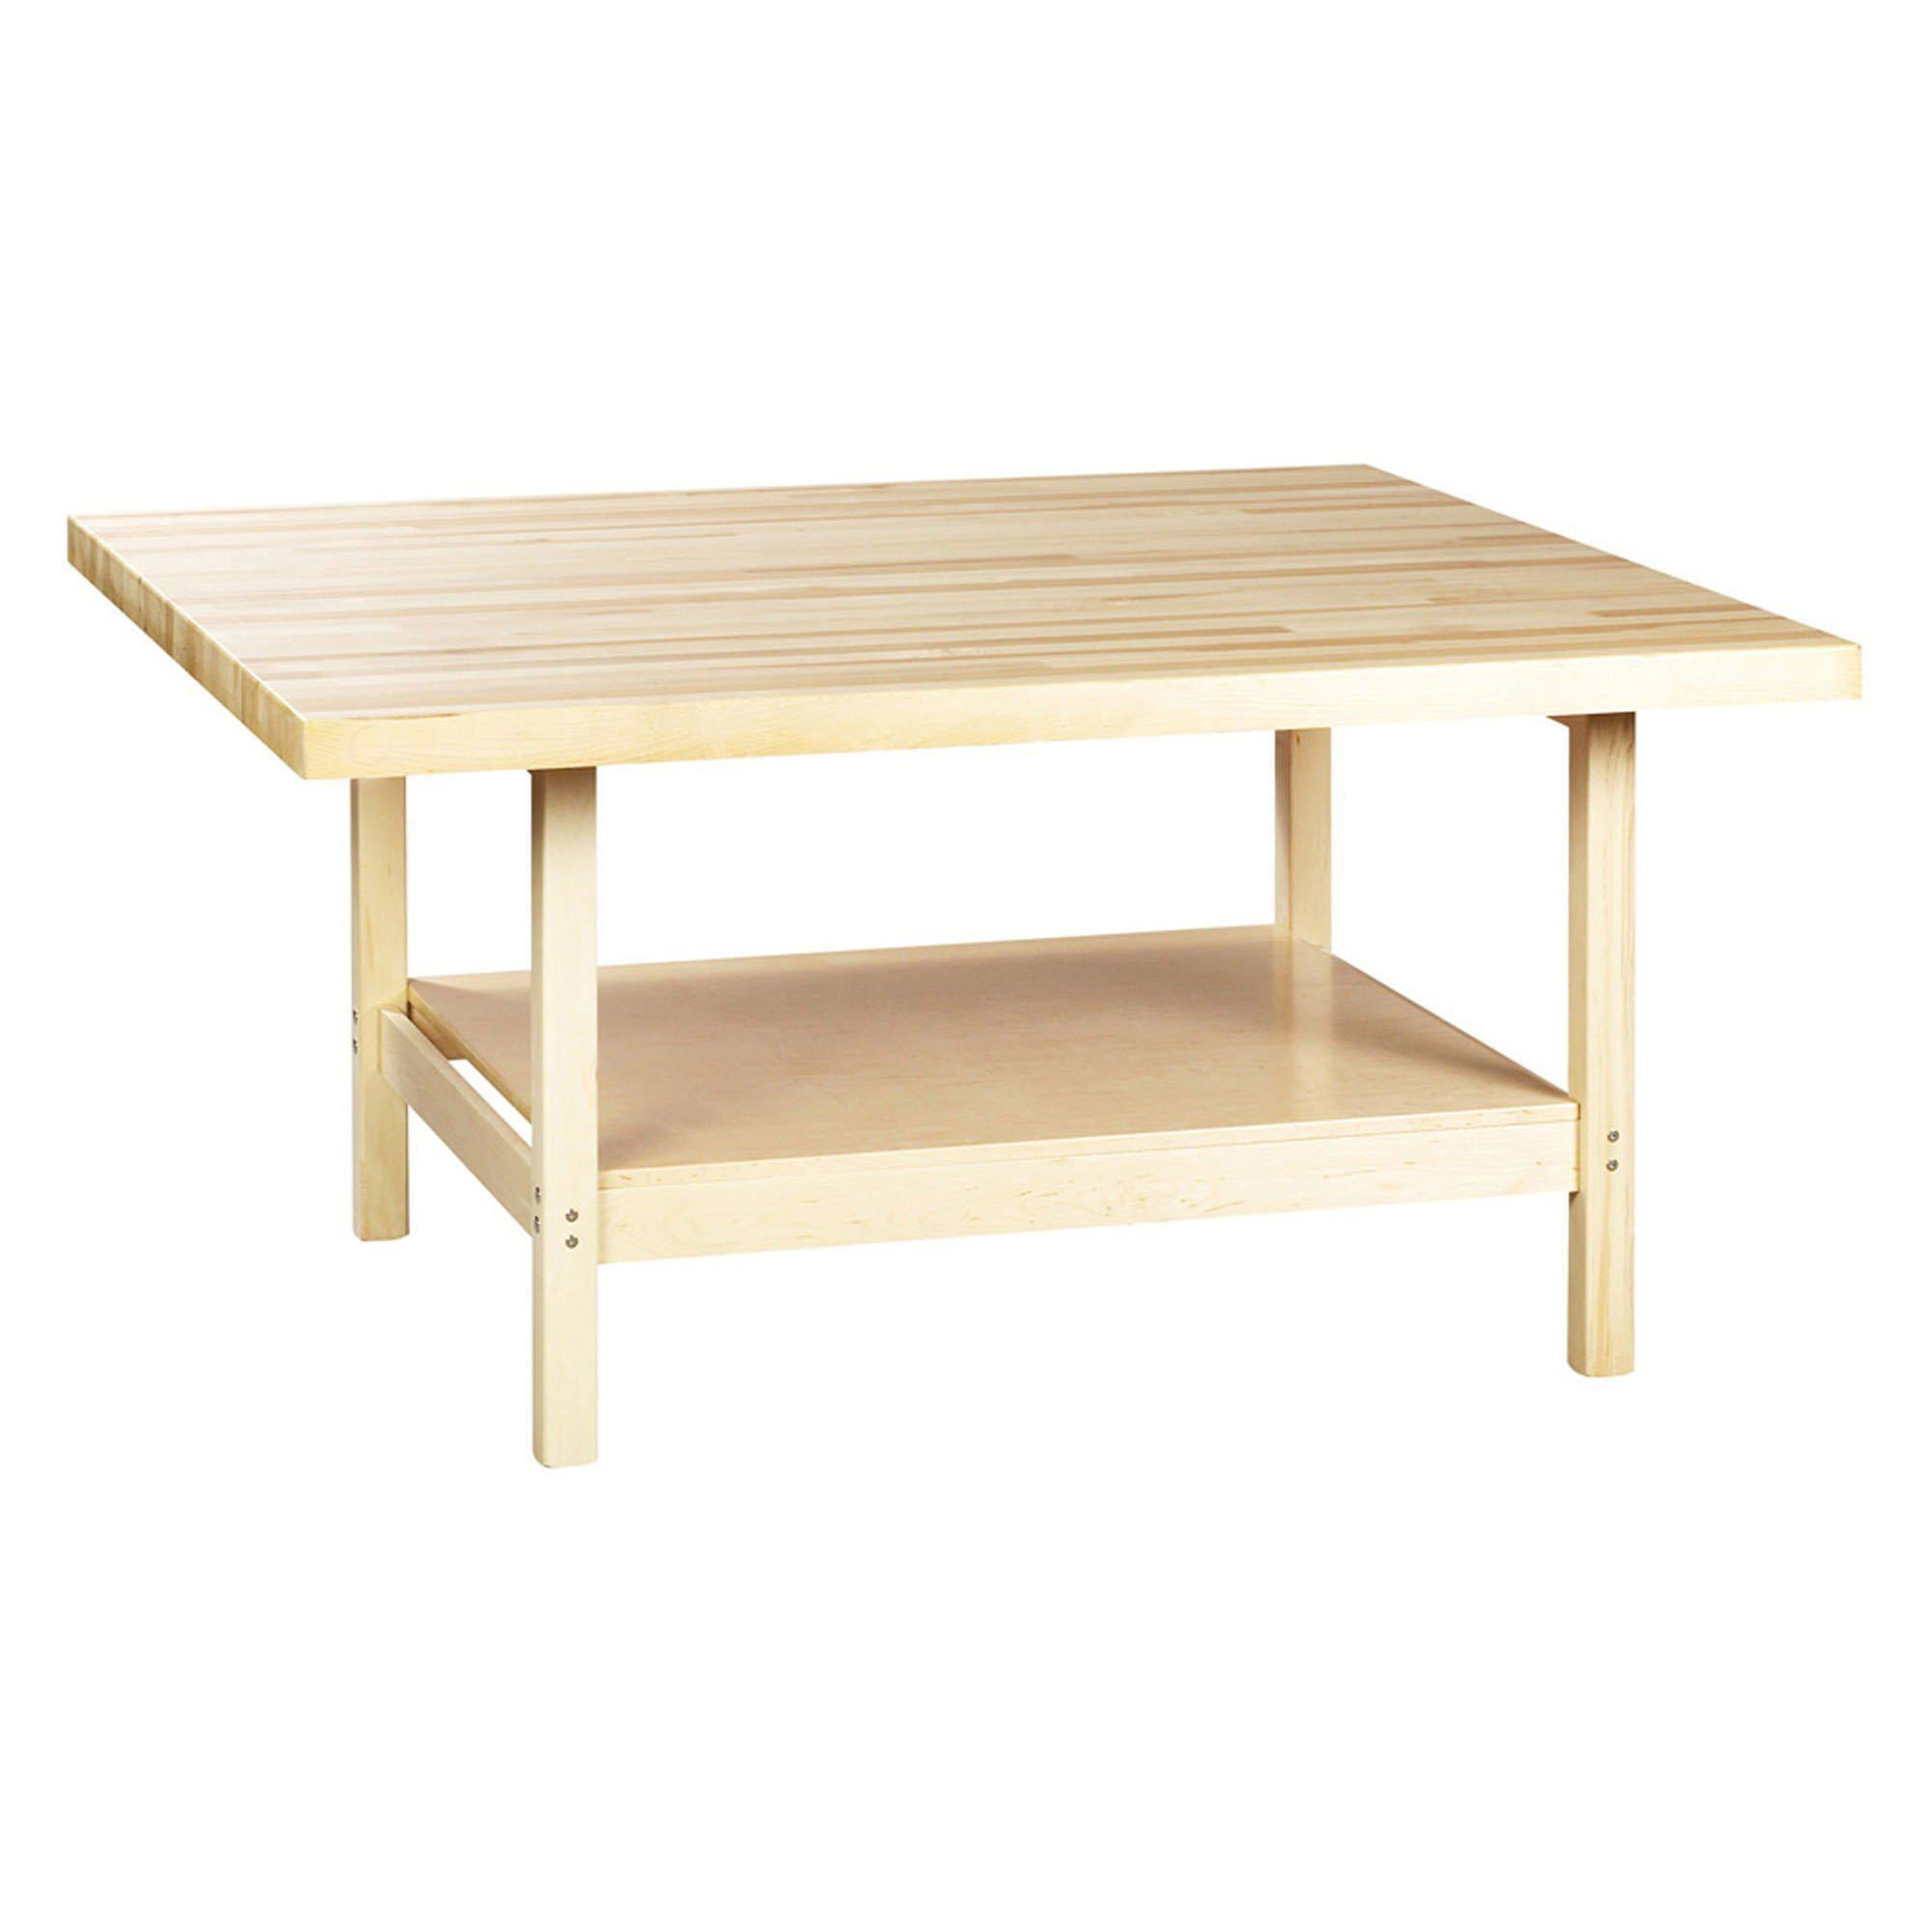 Open-Style Four-Station Wood Workbench